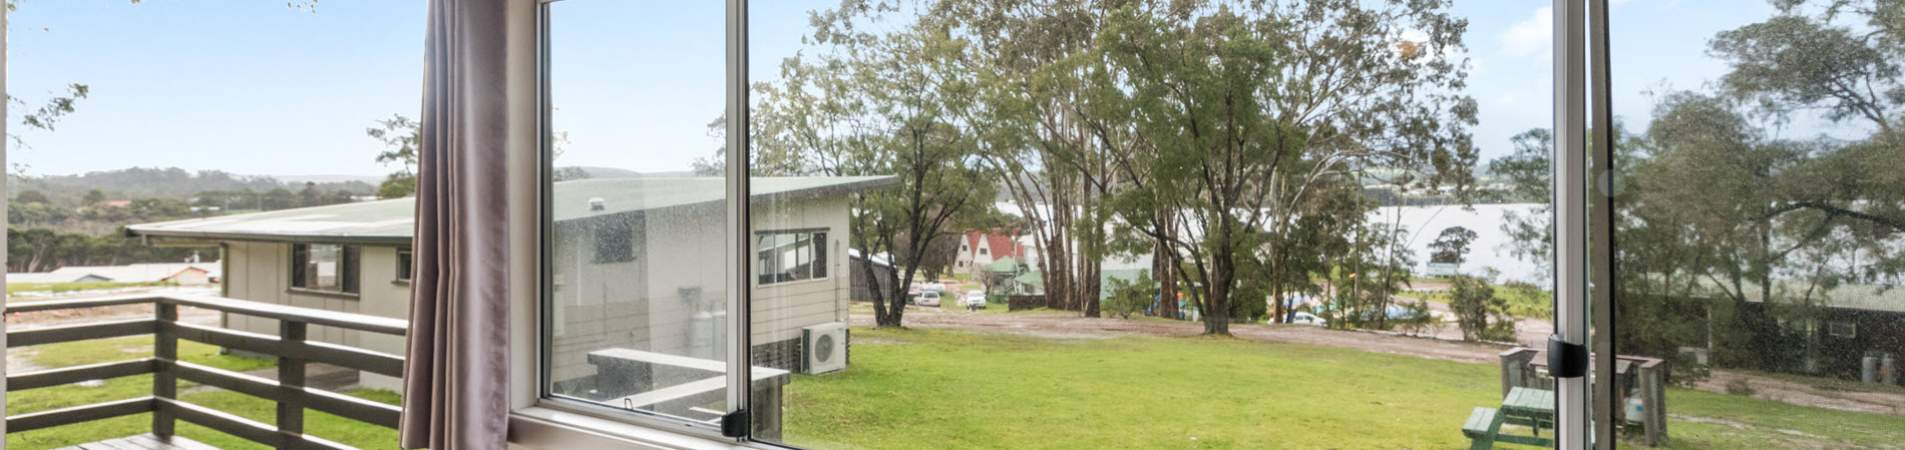 walpole rest point caravan park accommodation - banner 4